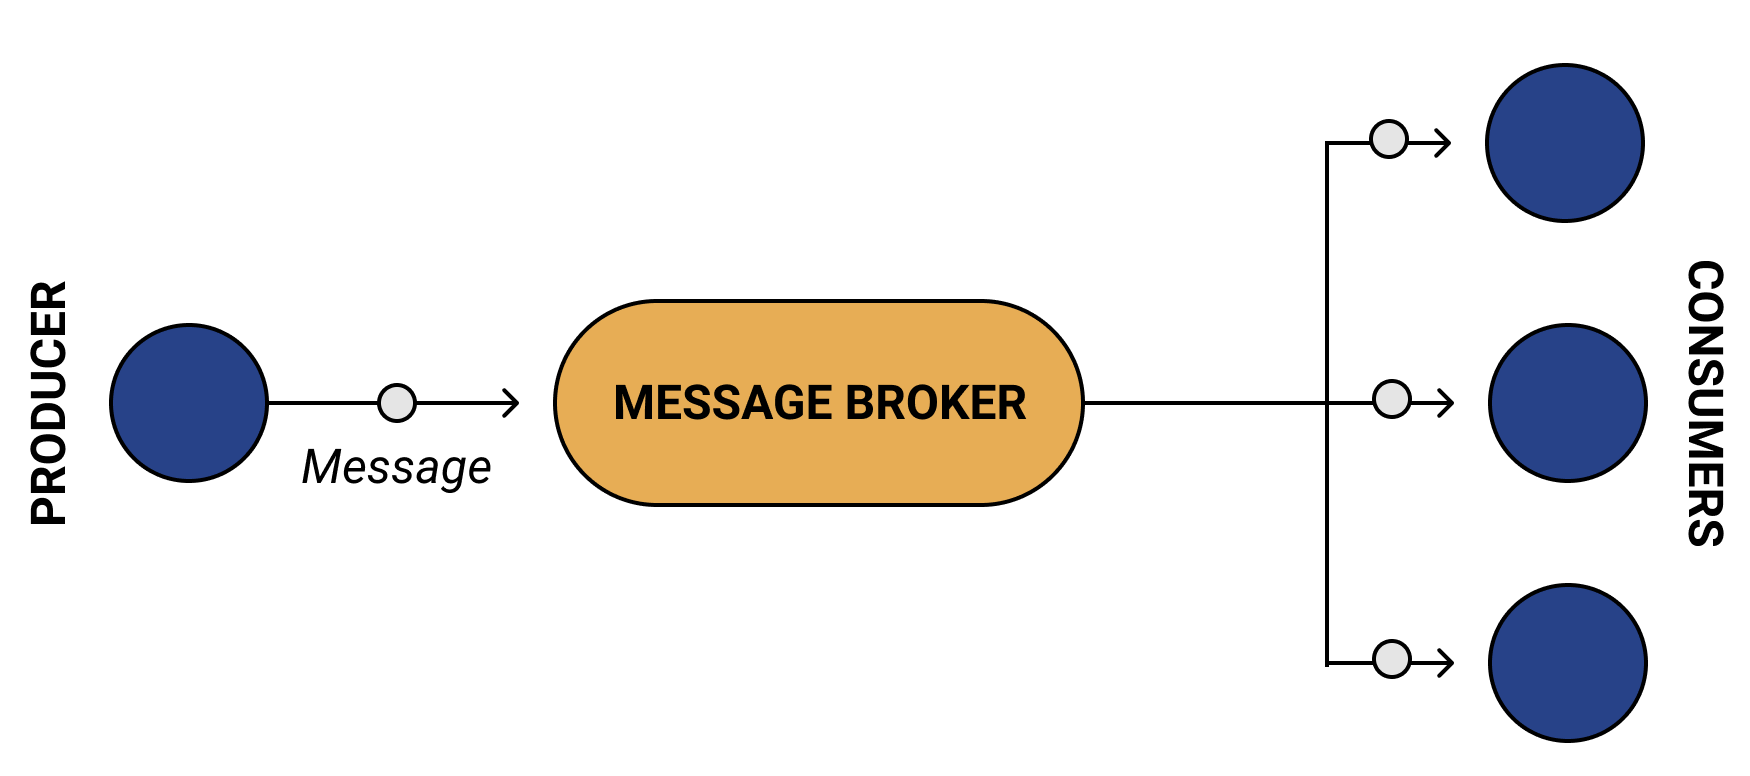 A Producer published a message to the broker (Kafka here), which can be consumed by 'n' consumers at any point of time.